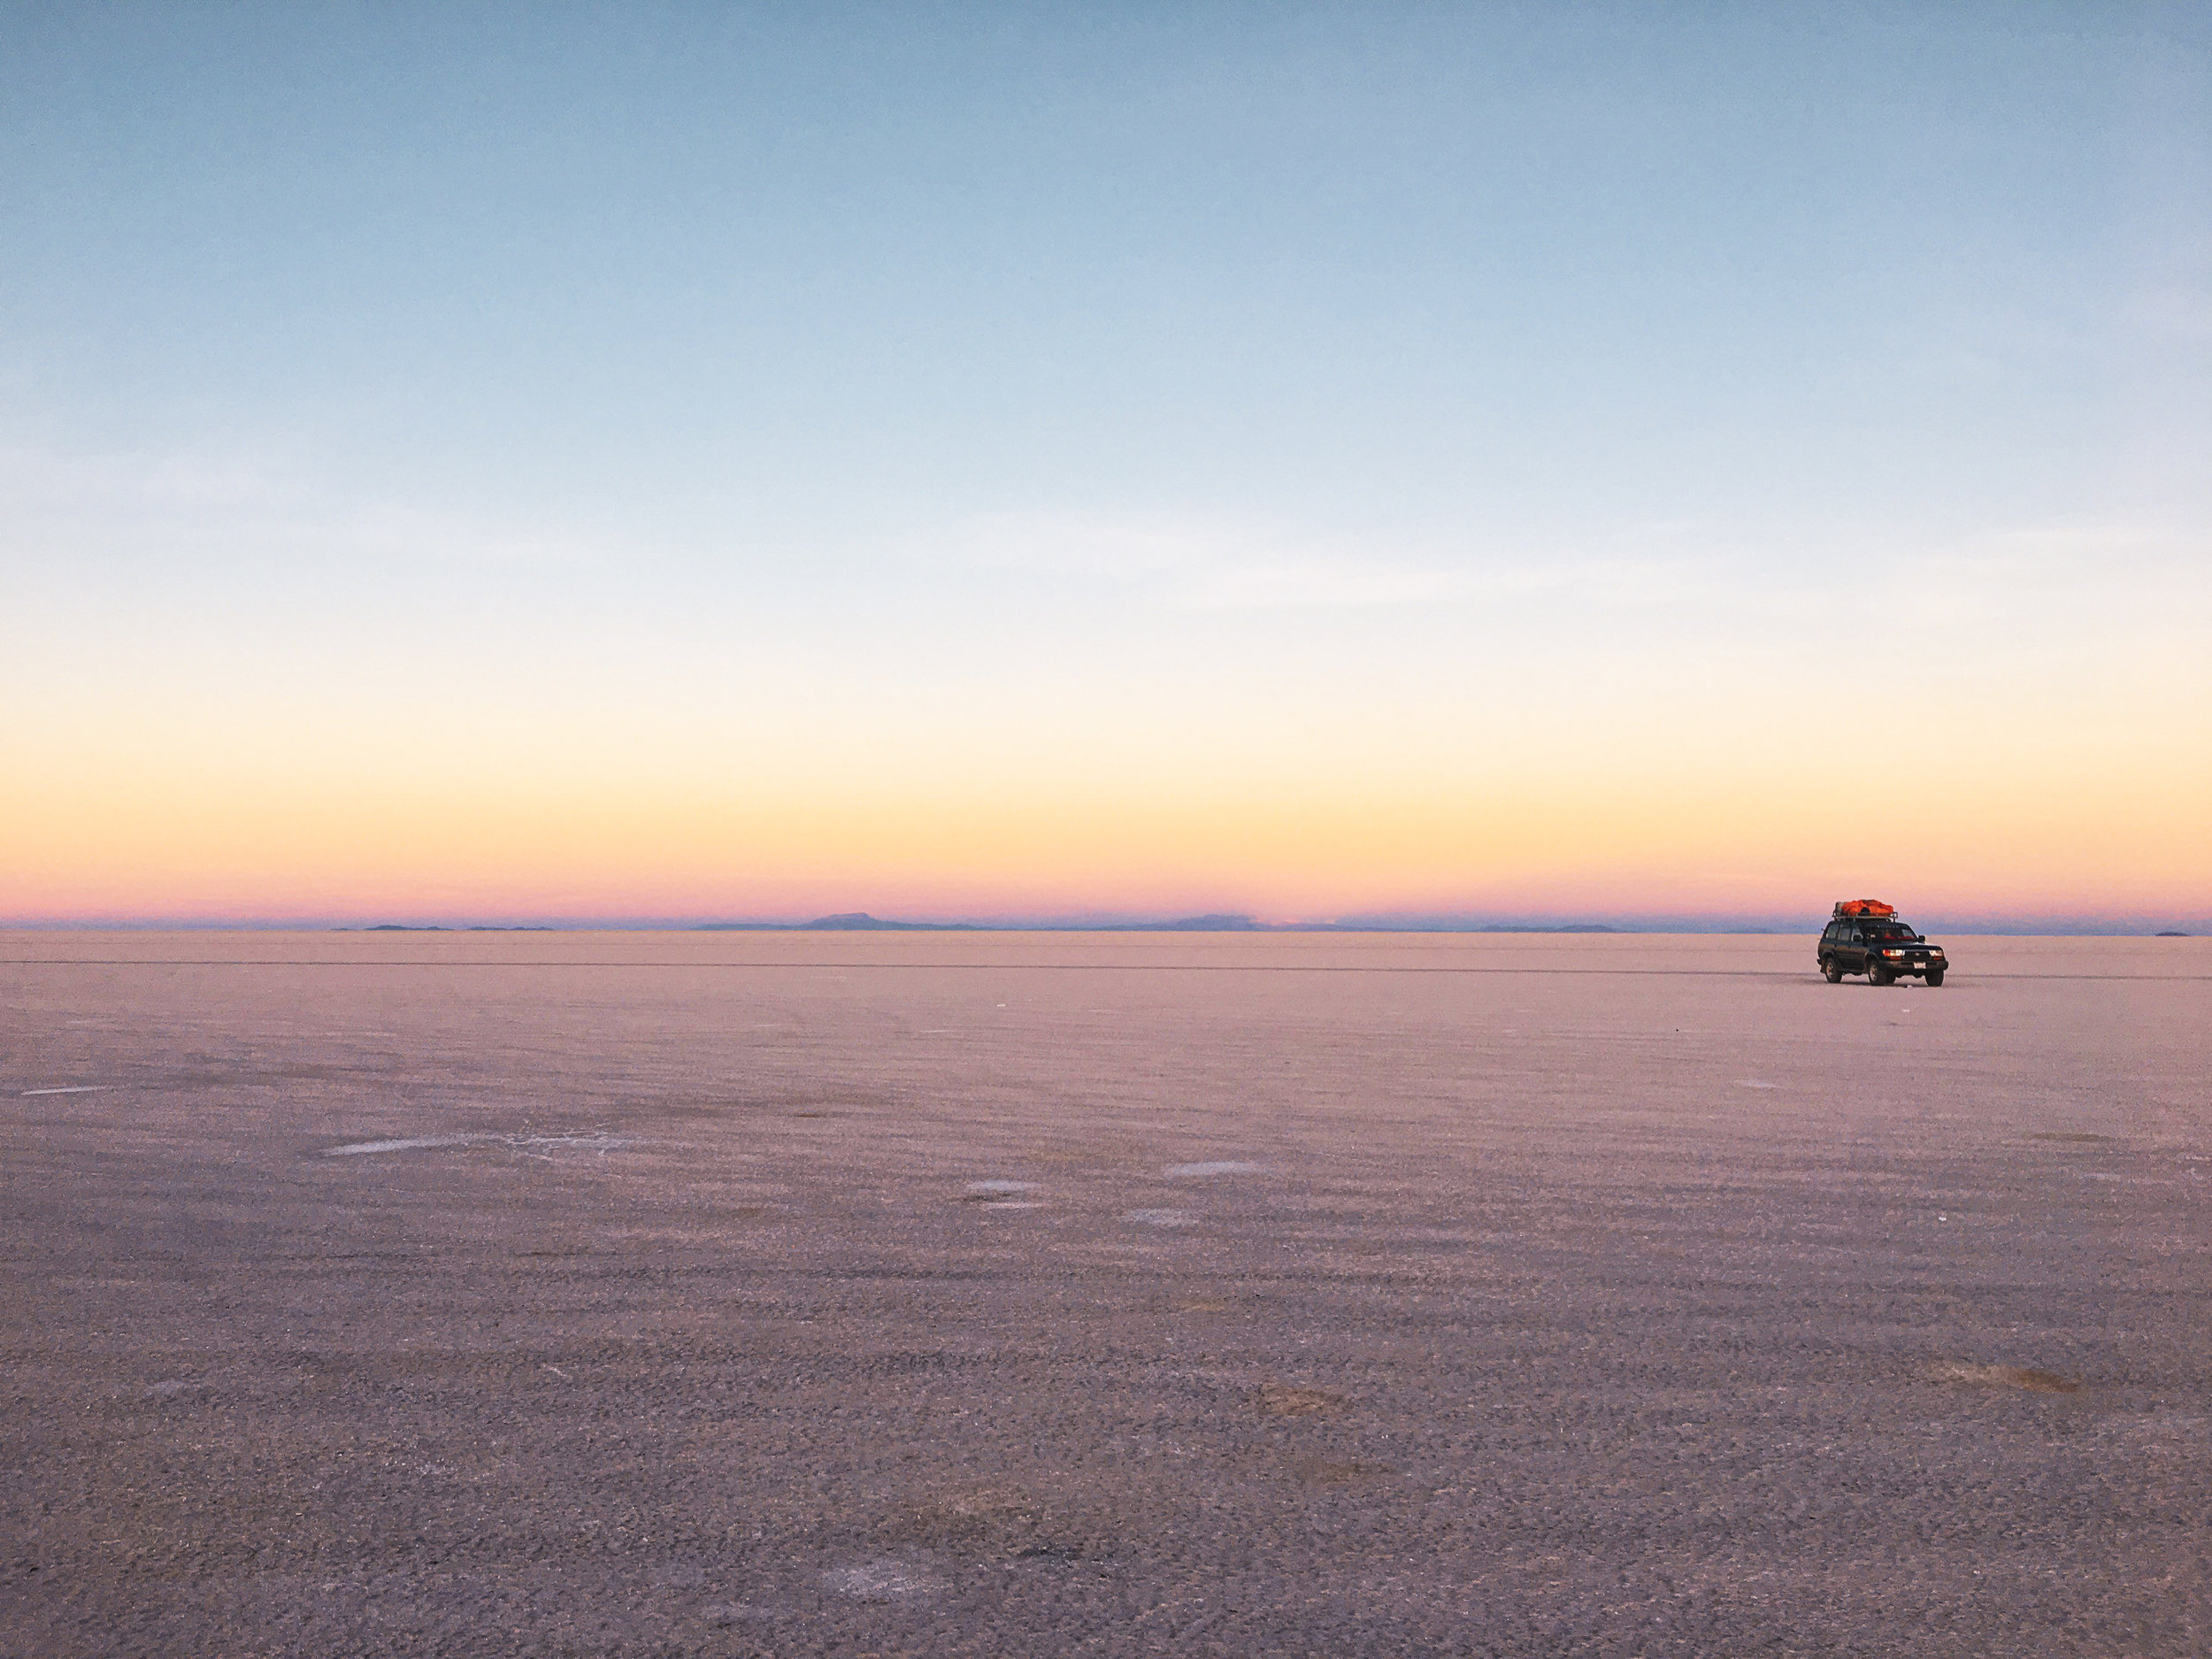 The Salar de Uyuni of Bolivia. One of the most magnificent places I've ever seen and one of the highlights of my first solo backpacking trip to South America.